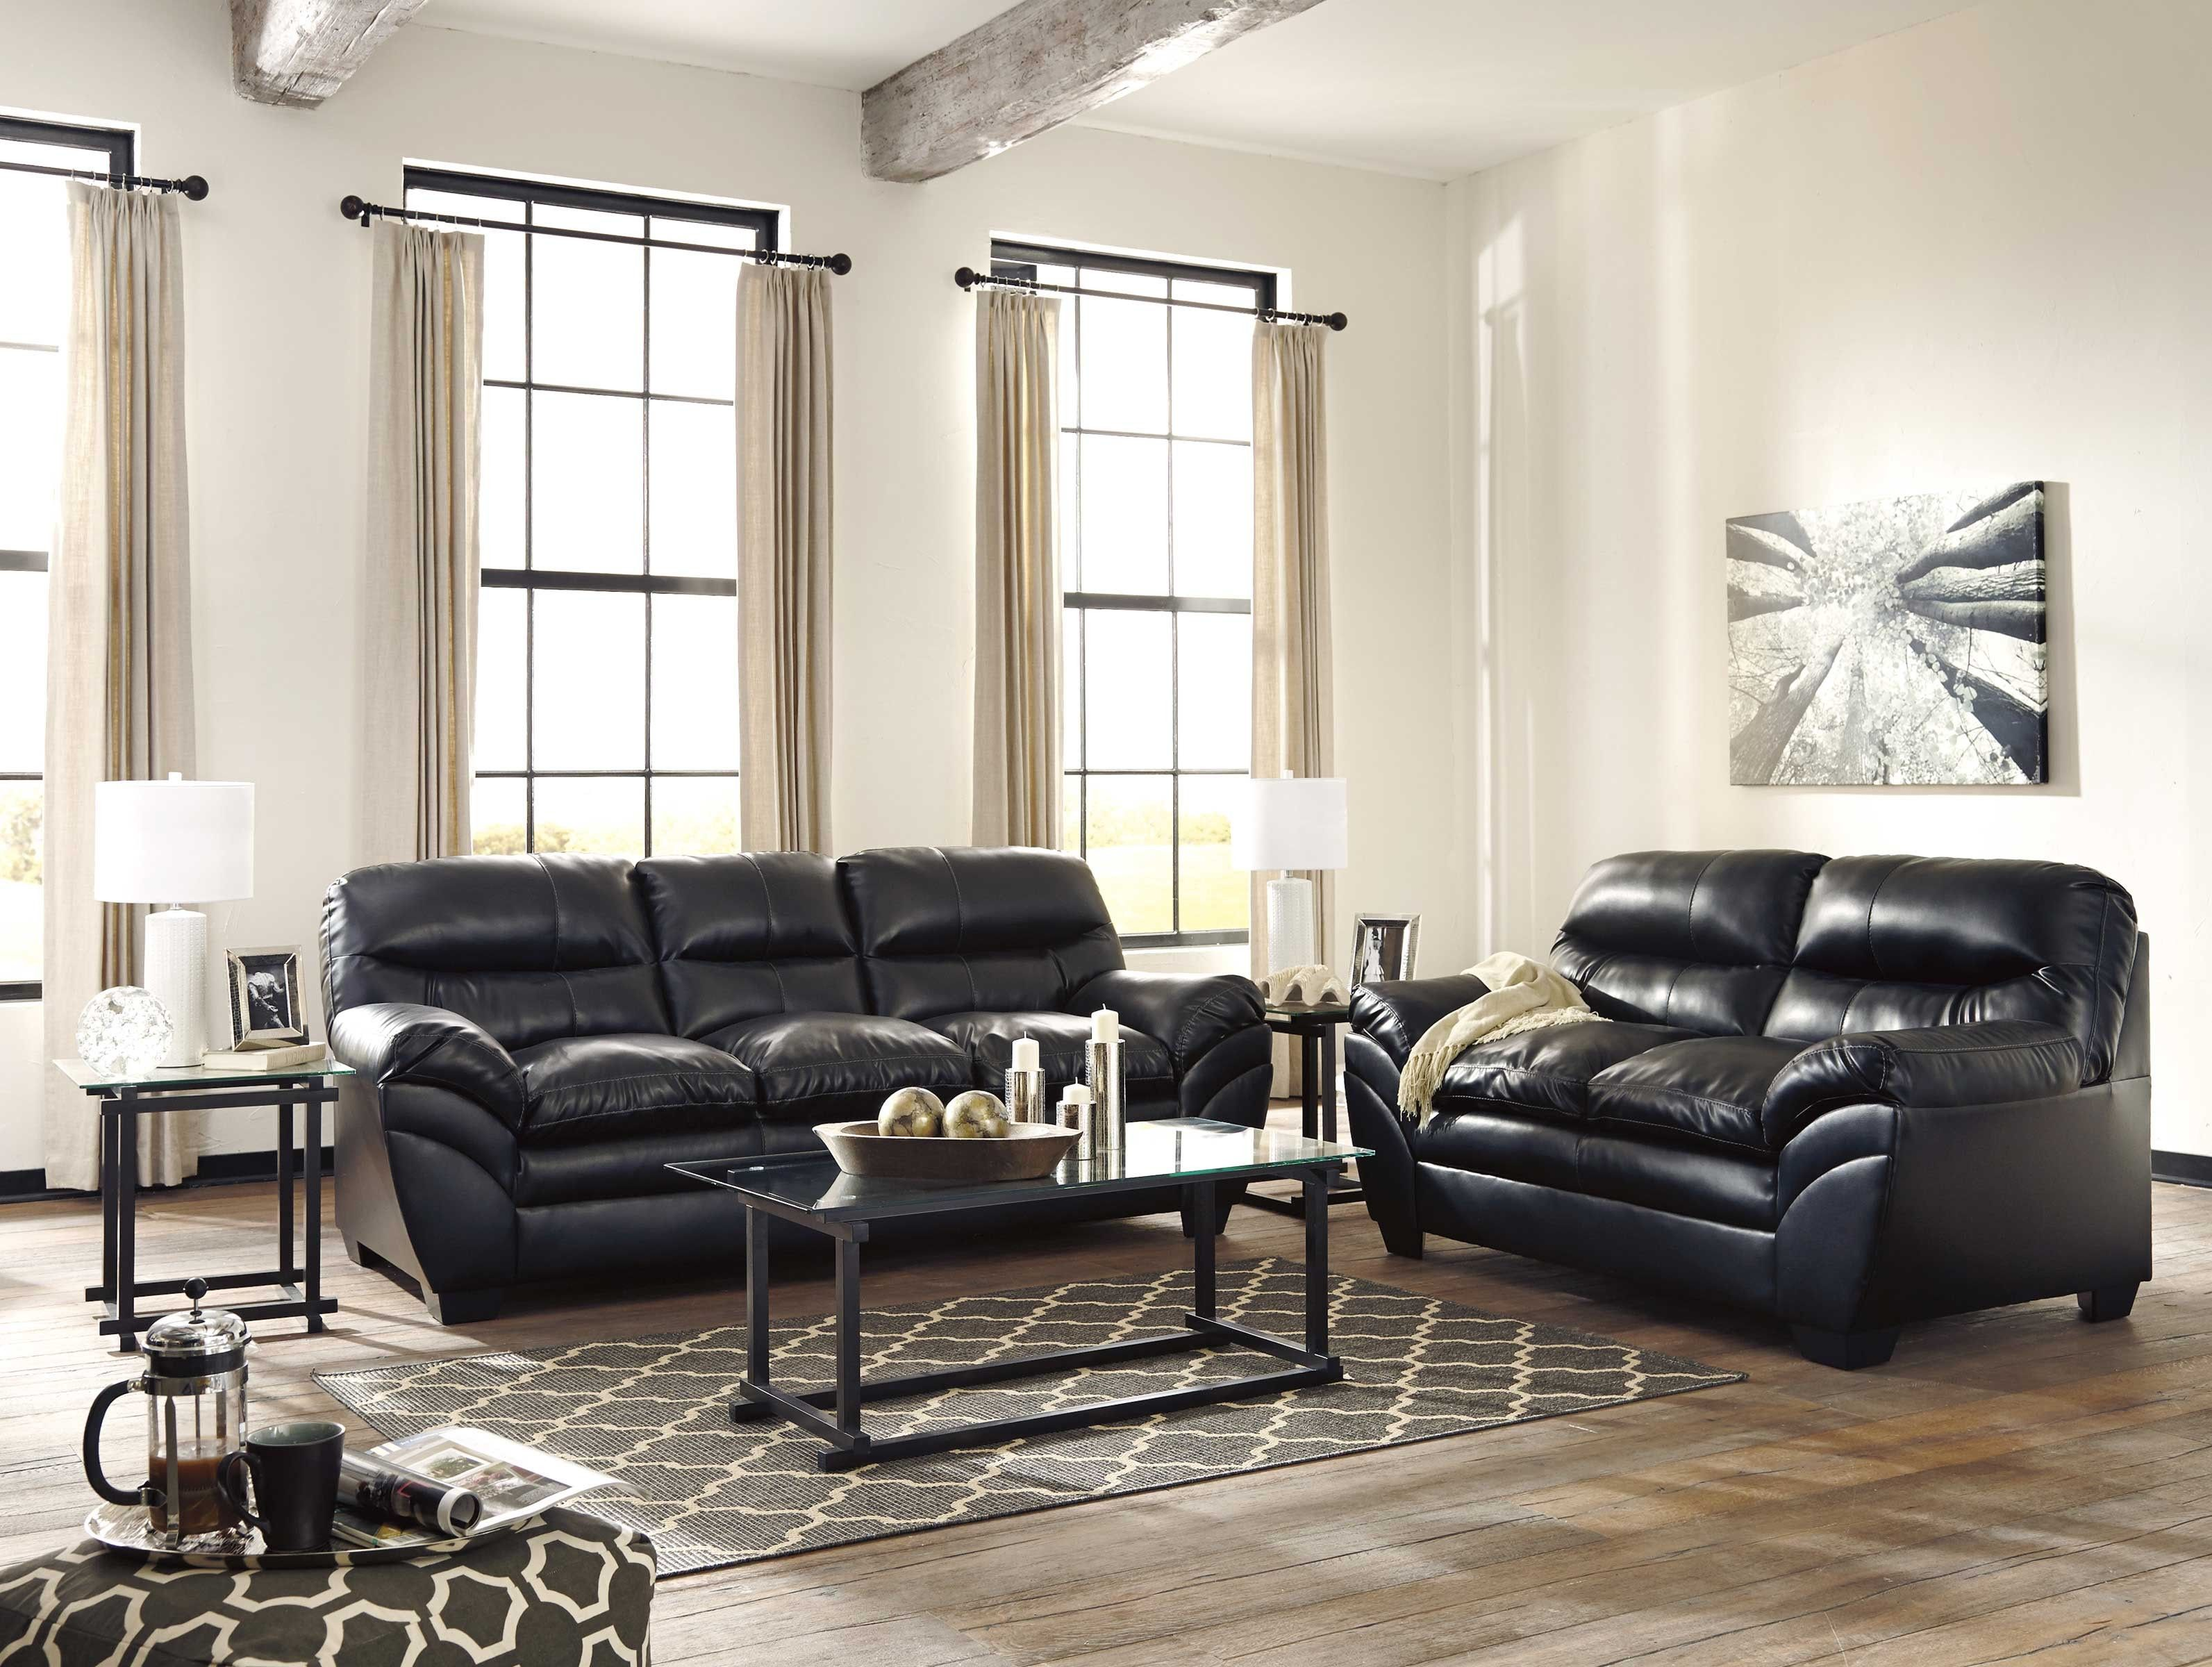 Invest In Affordable Stylish And Long Lasting Furniture Pieces To